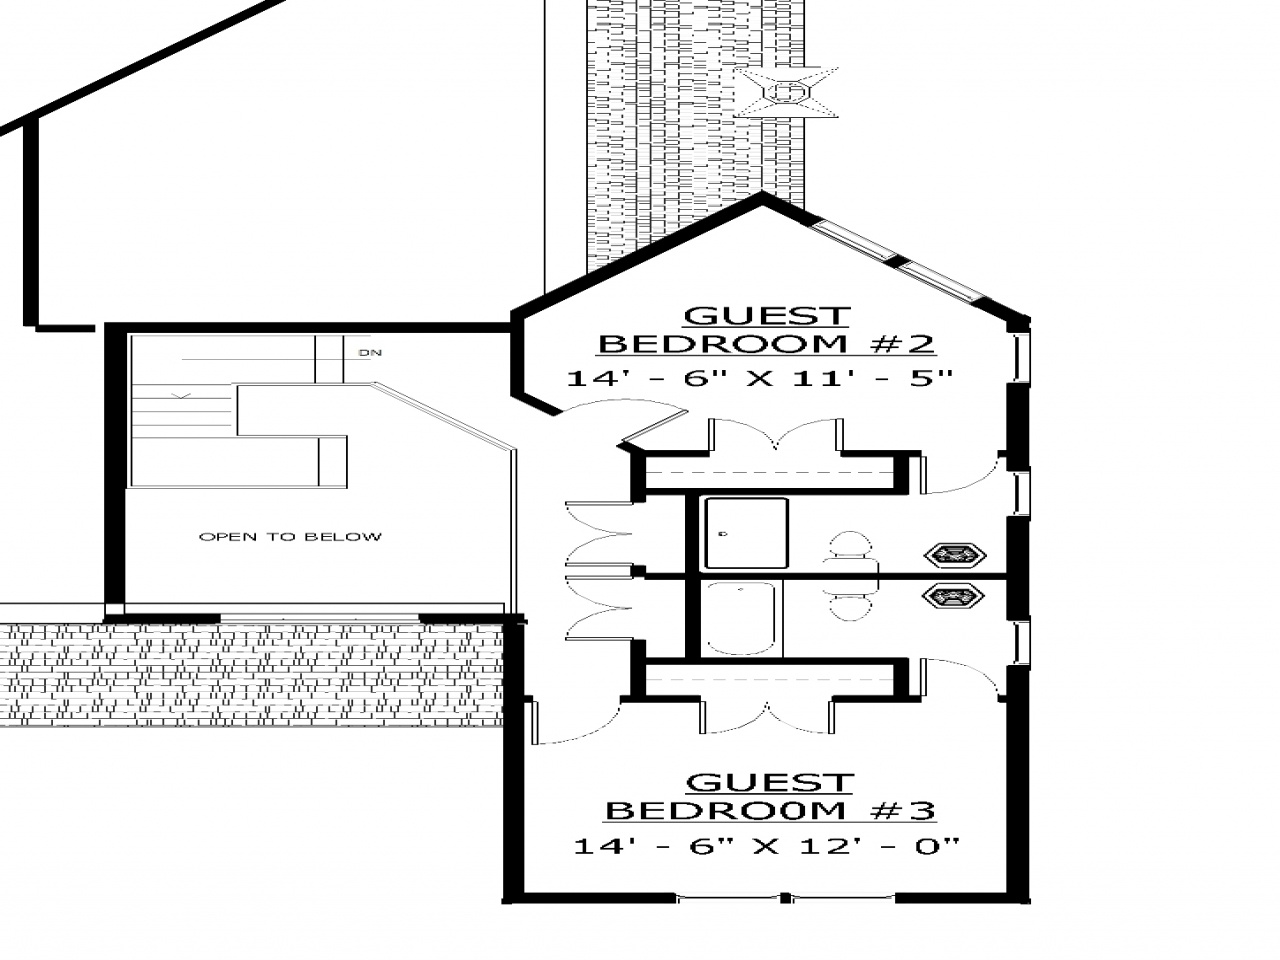 conch-house-floor-plans-key-west-conch-house-lrg-99bd75482f476581 Conch Style House Plans on key west cottage house plans, small bungalow house plans, island style cottage plans, small cheap house plans, key west conch house plans,